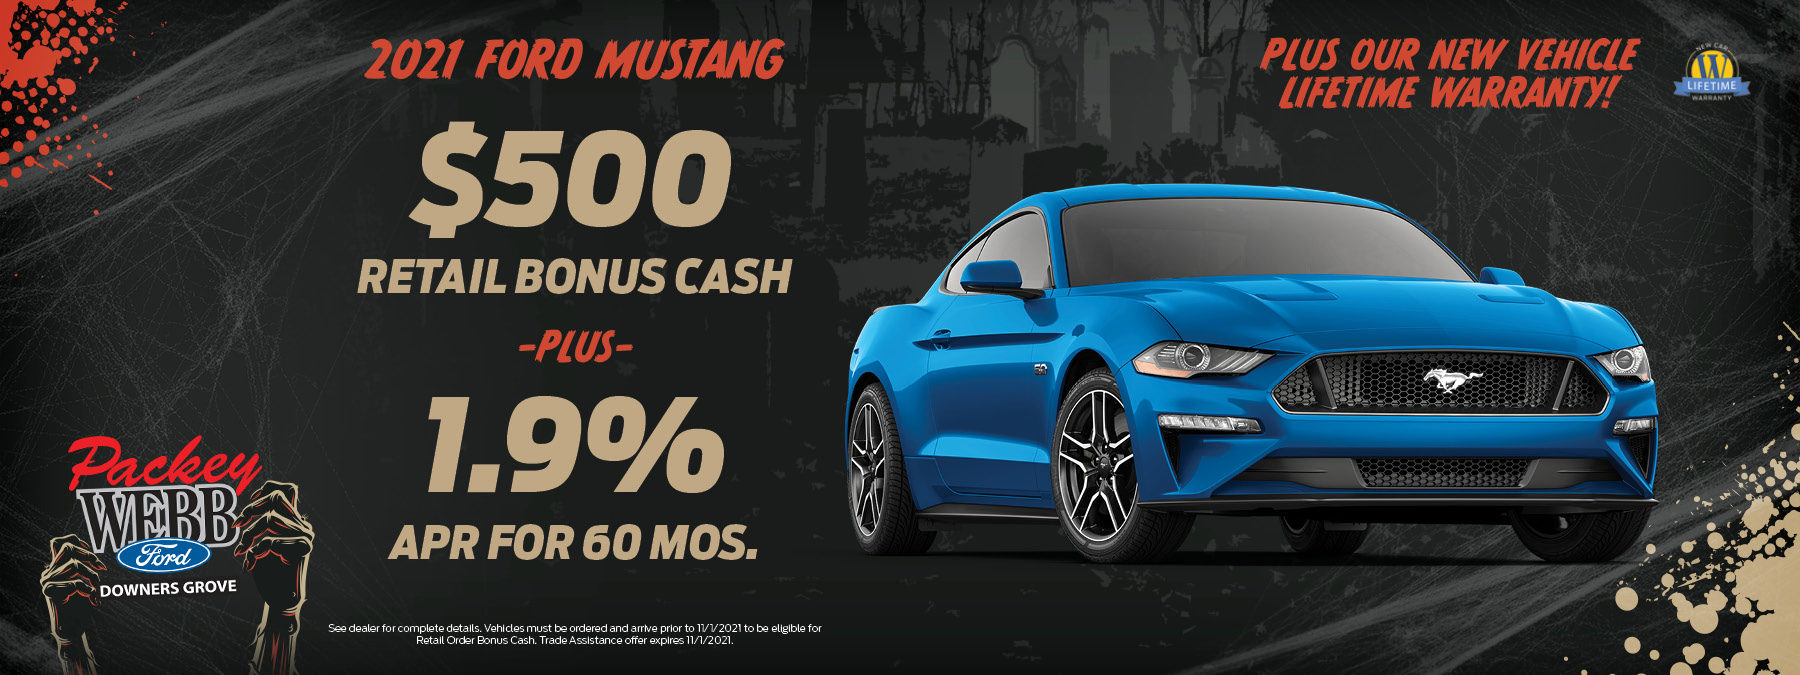 2021 Ford Mustang   Packey Webb Ford   Downers Grove, IL